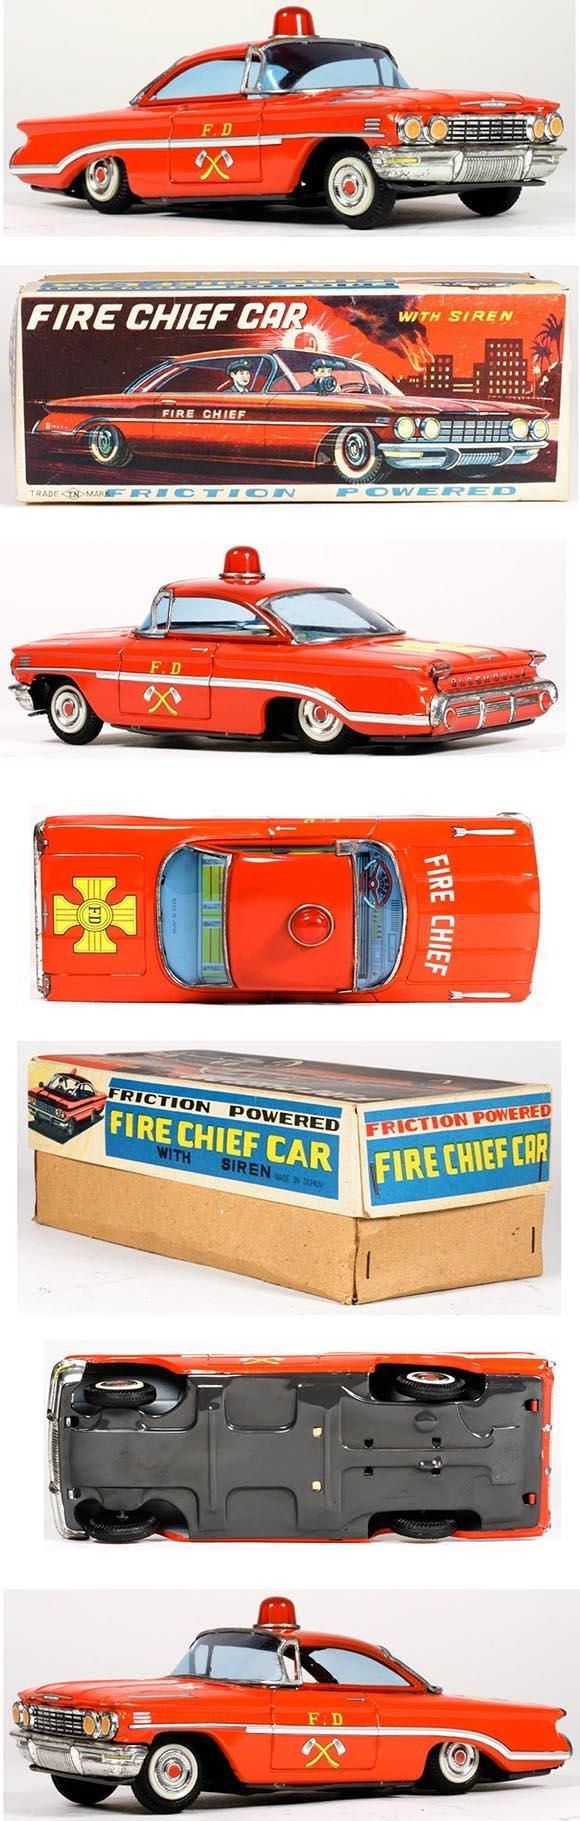 1960 Oldsmobile Fire Chief